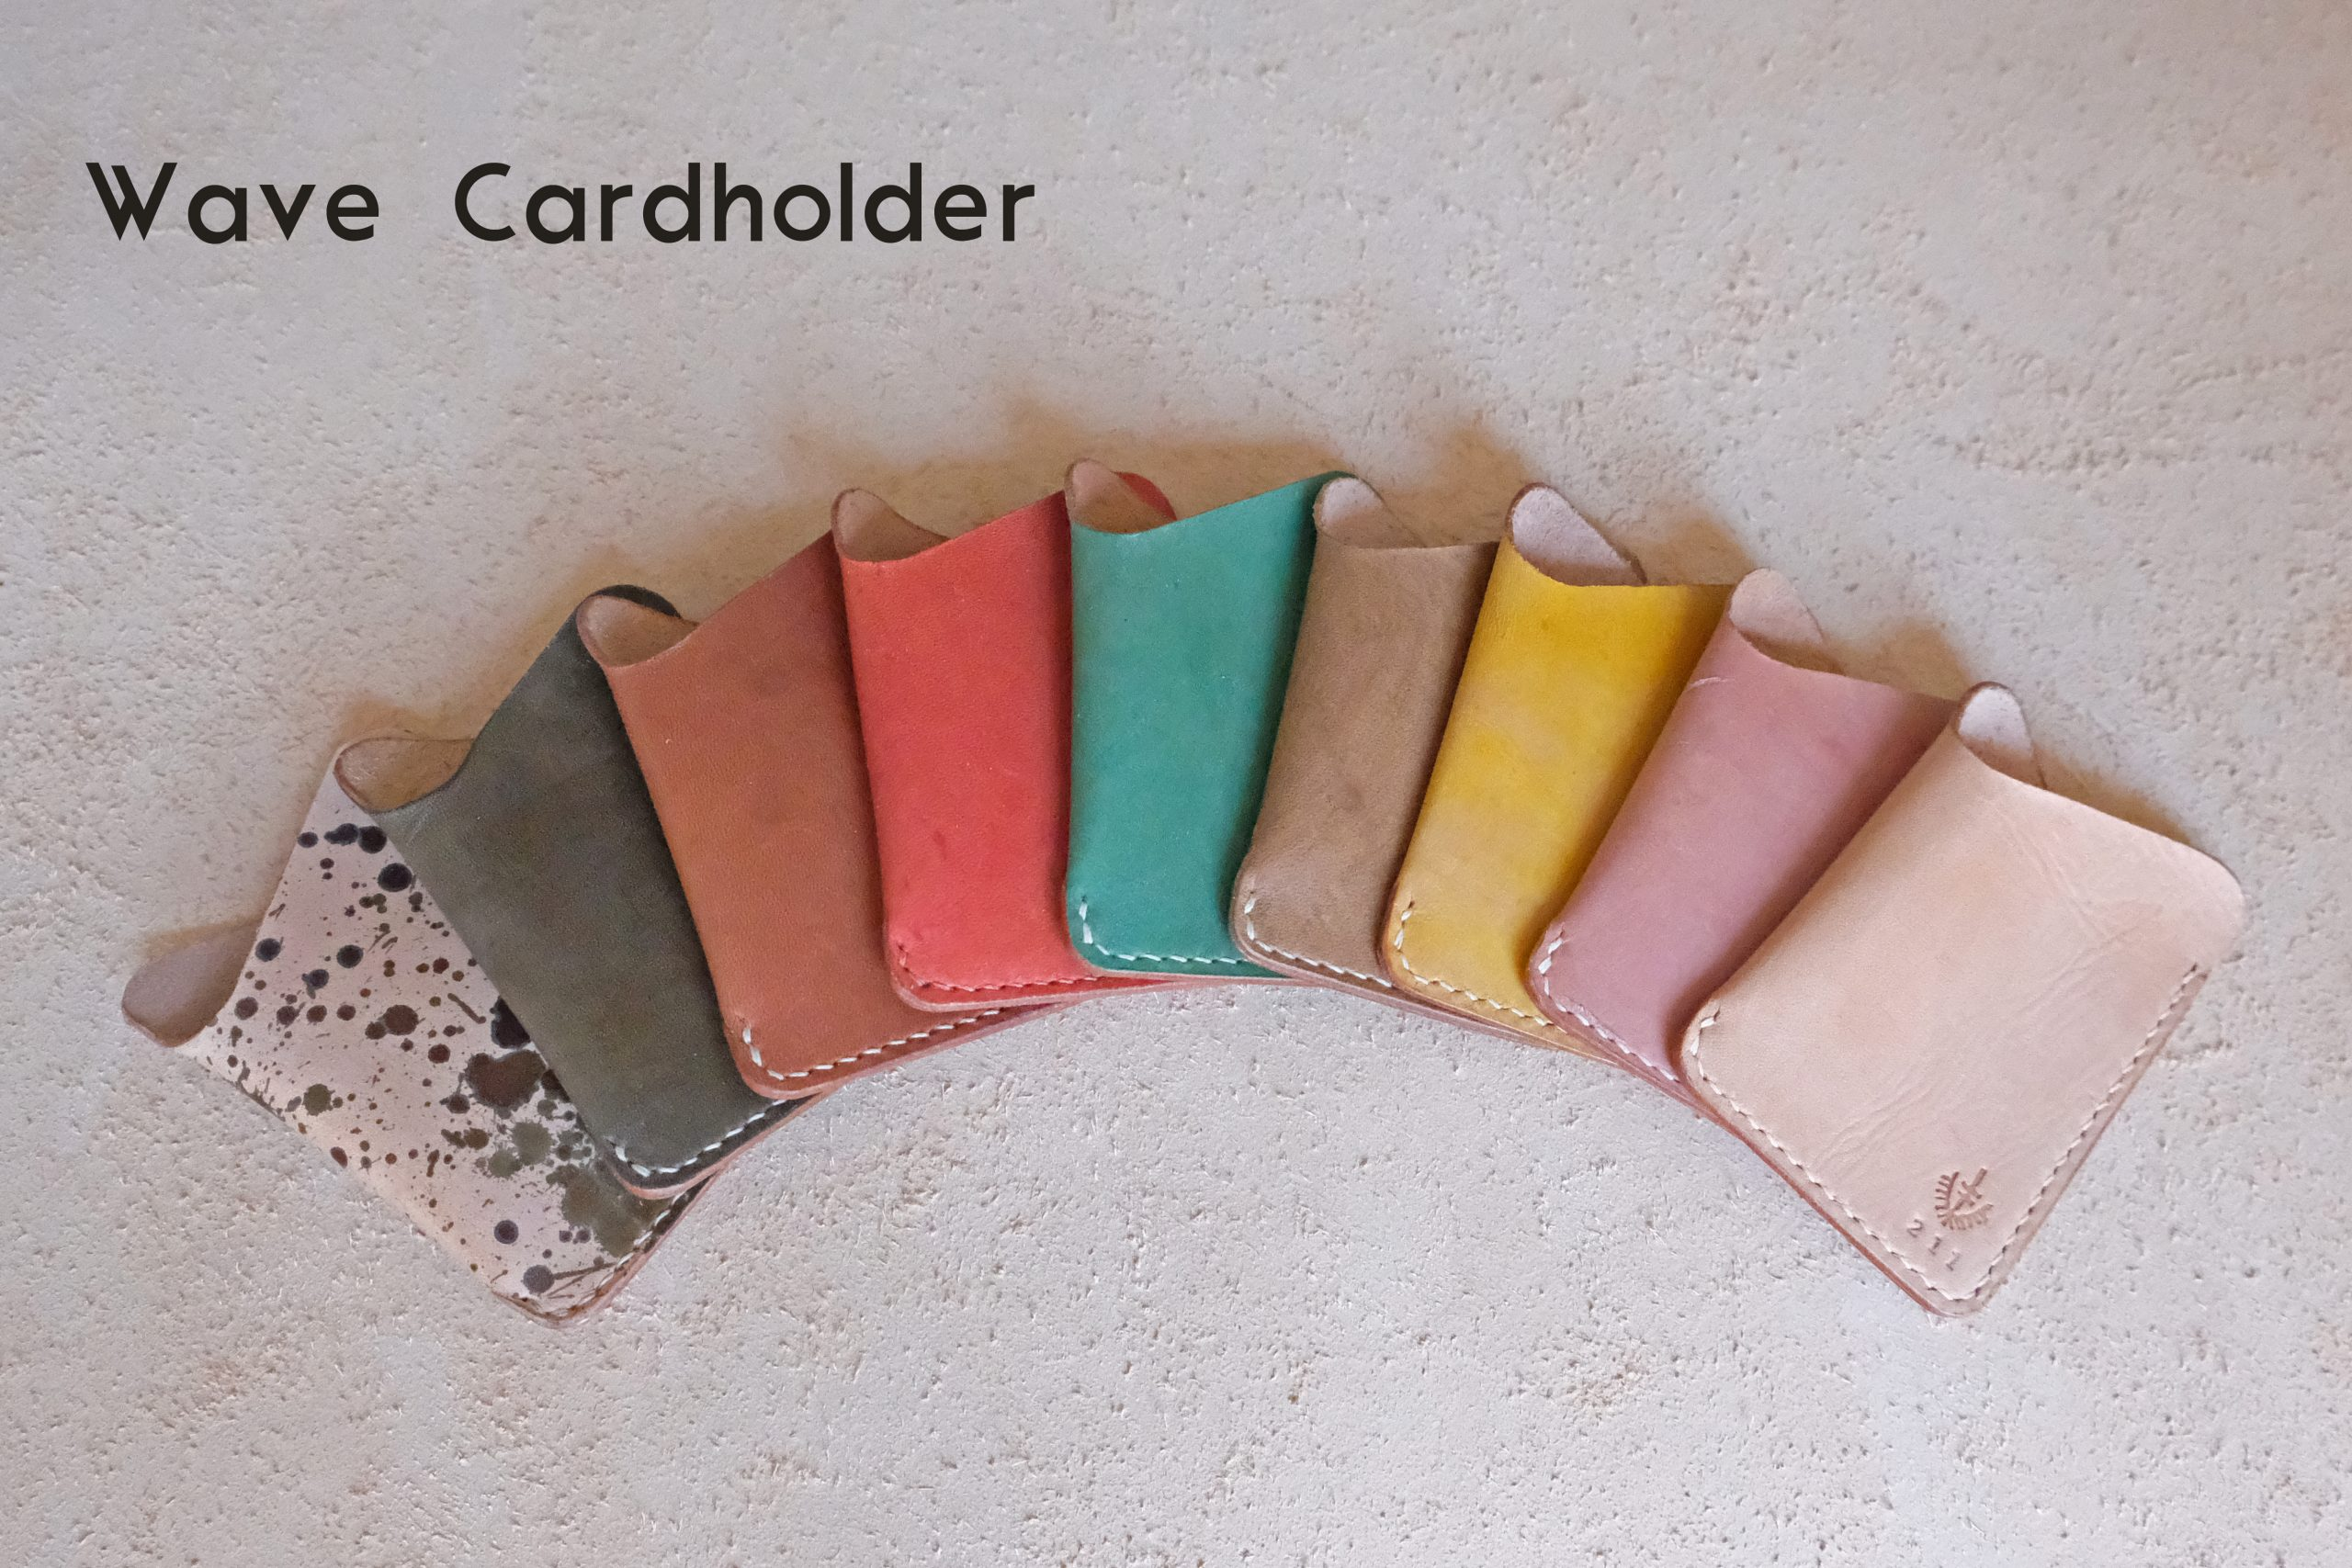 lerif designs wave cardholder assorted colors arranged in a rainbow